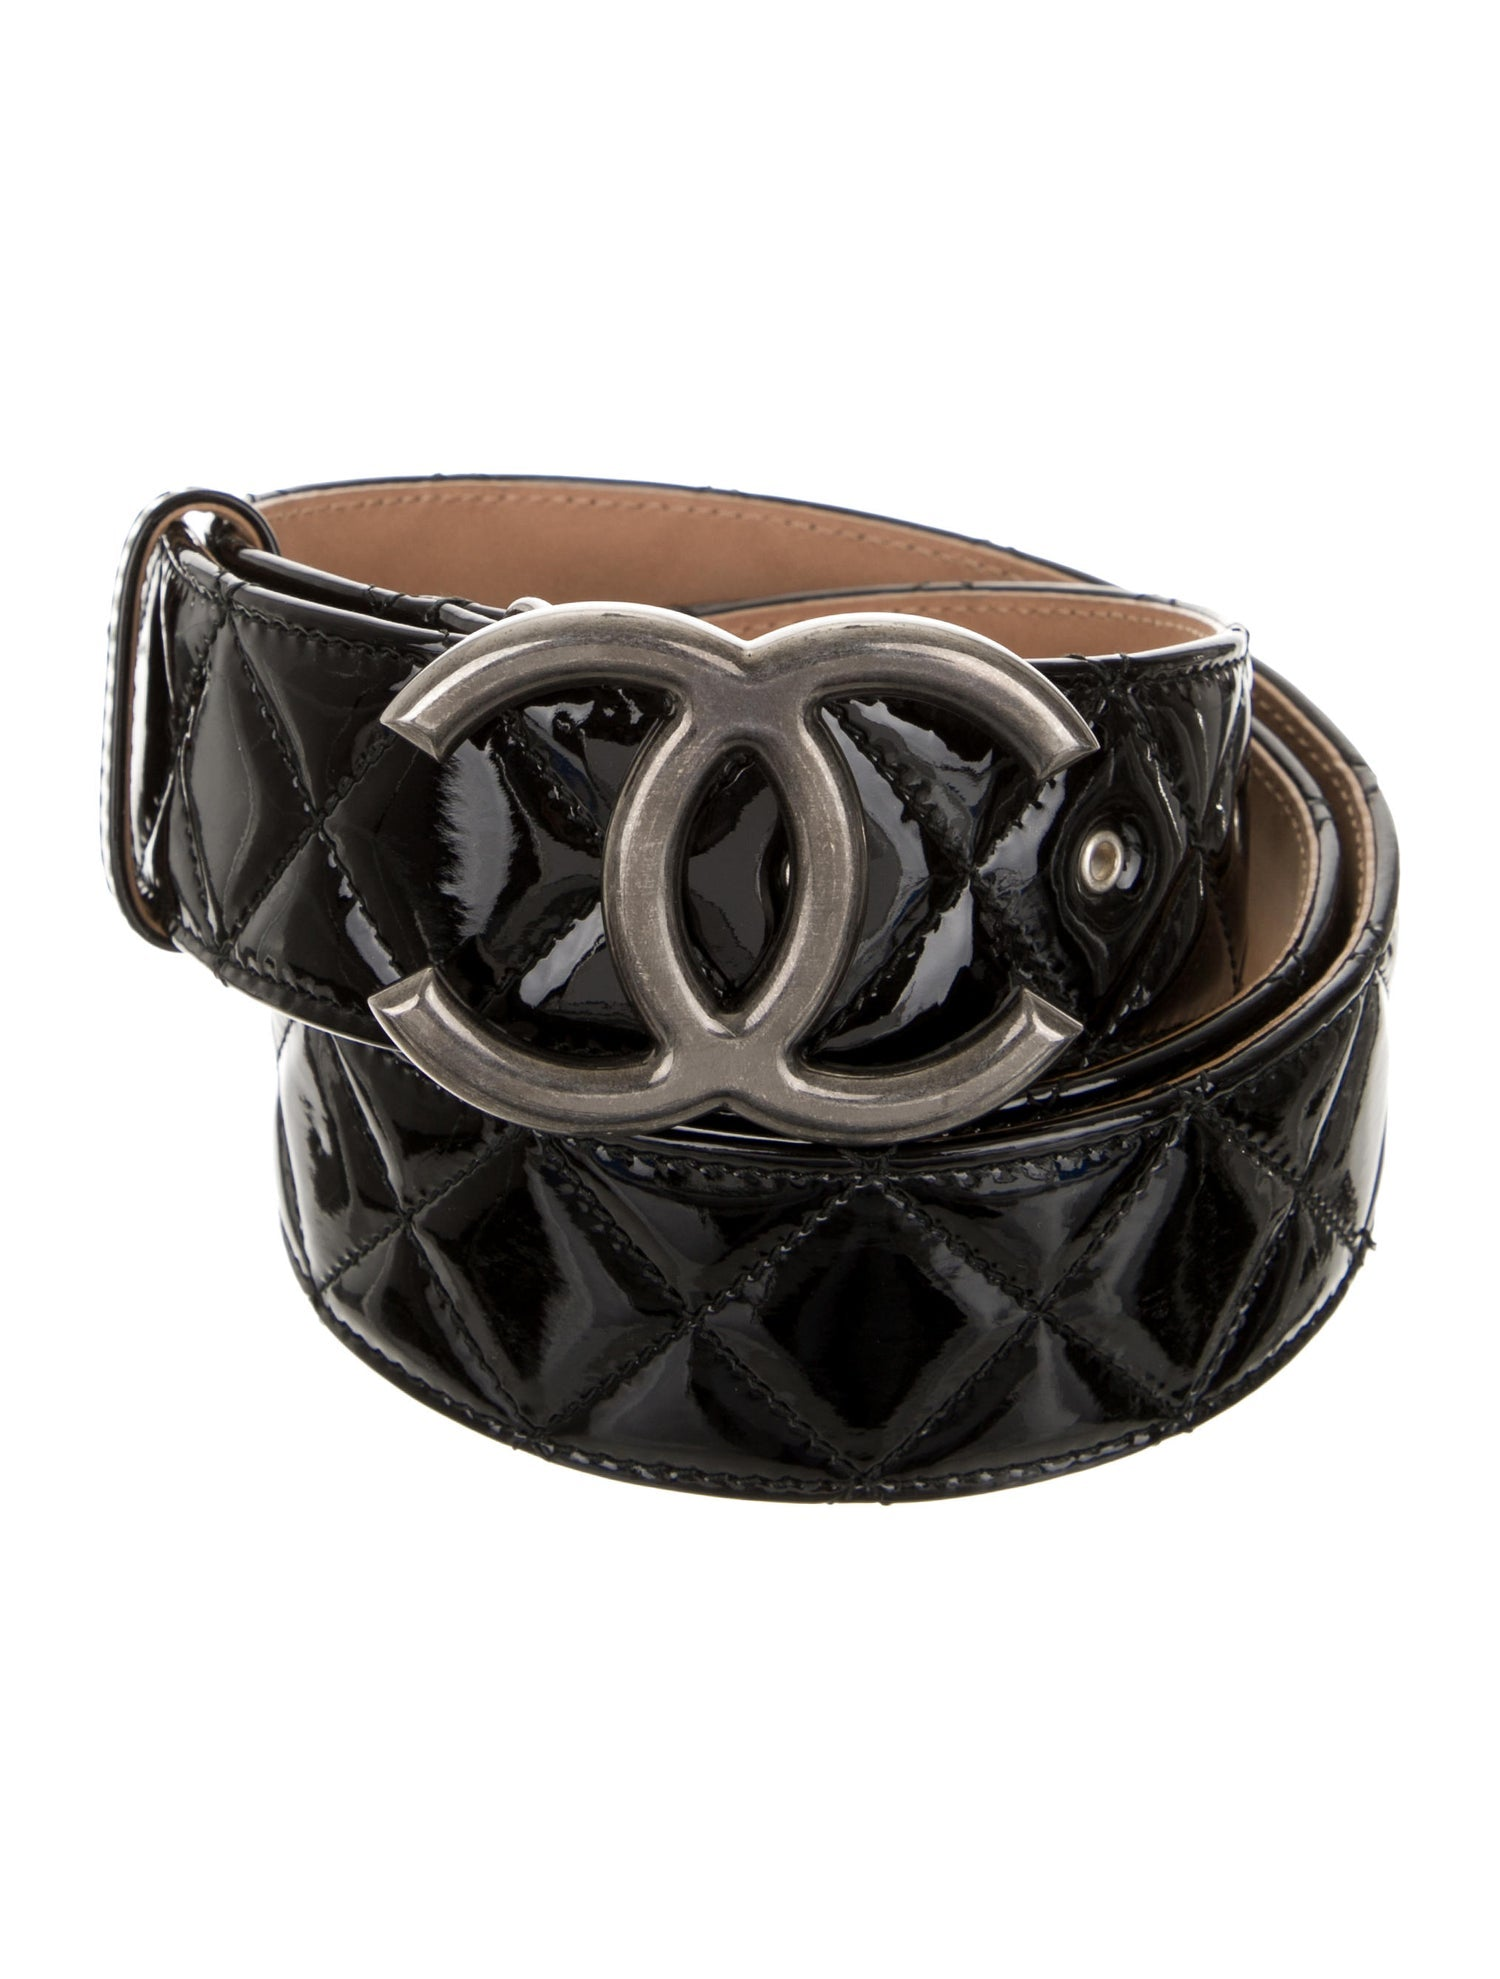 Chanel Quilted Patent Belt Sz 90